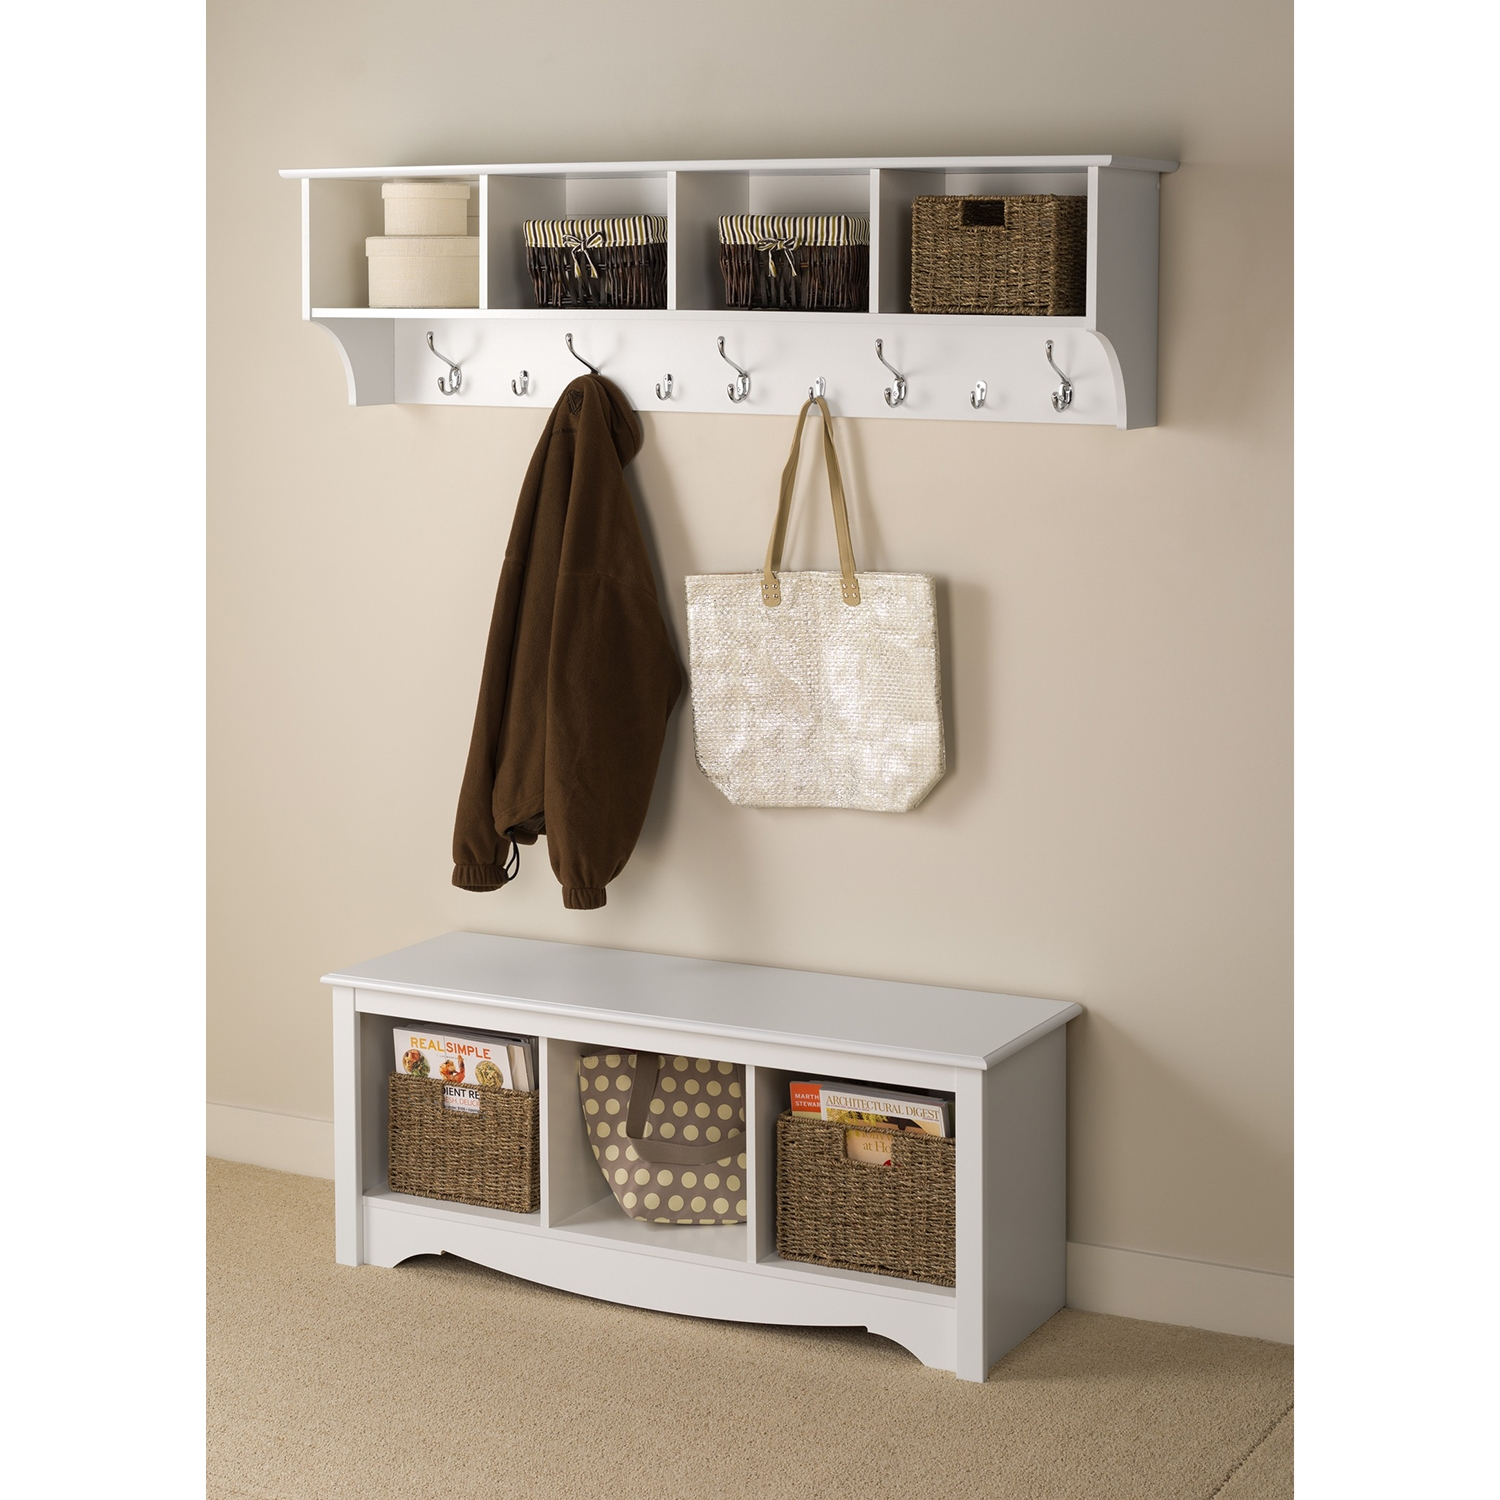 60 Inch Wide Hanging Entryway Shelf - White - PRE-WEC-6016